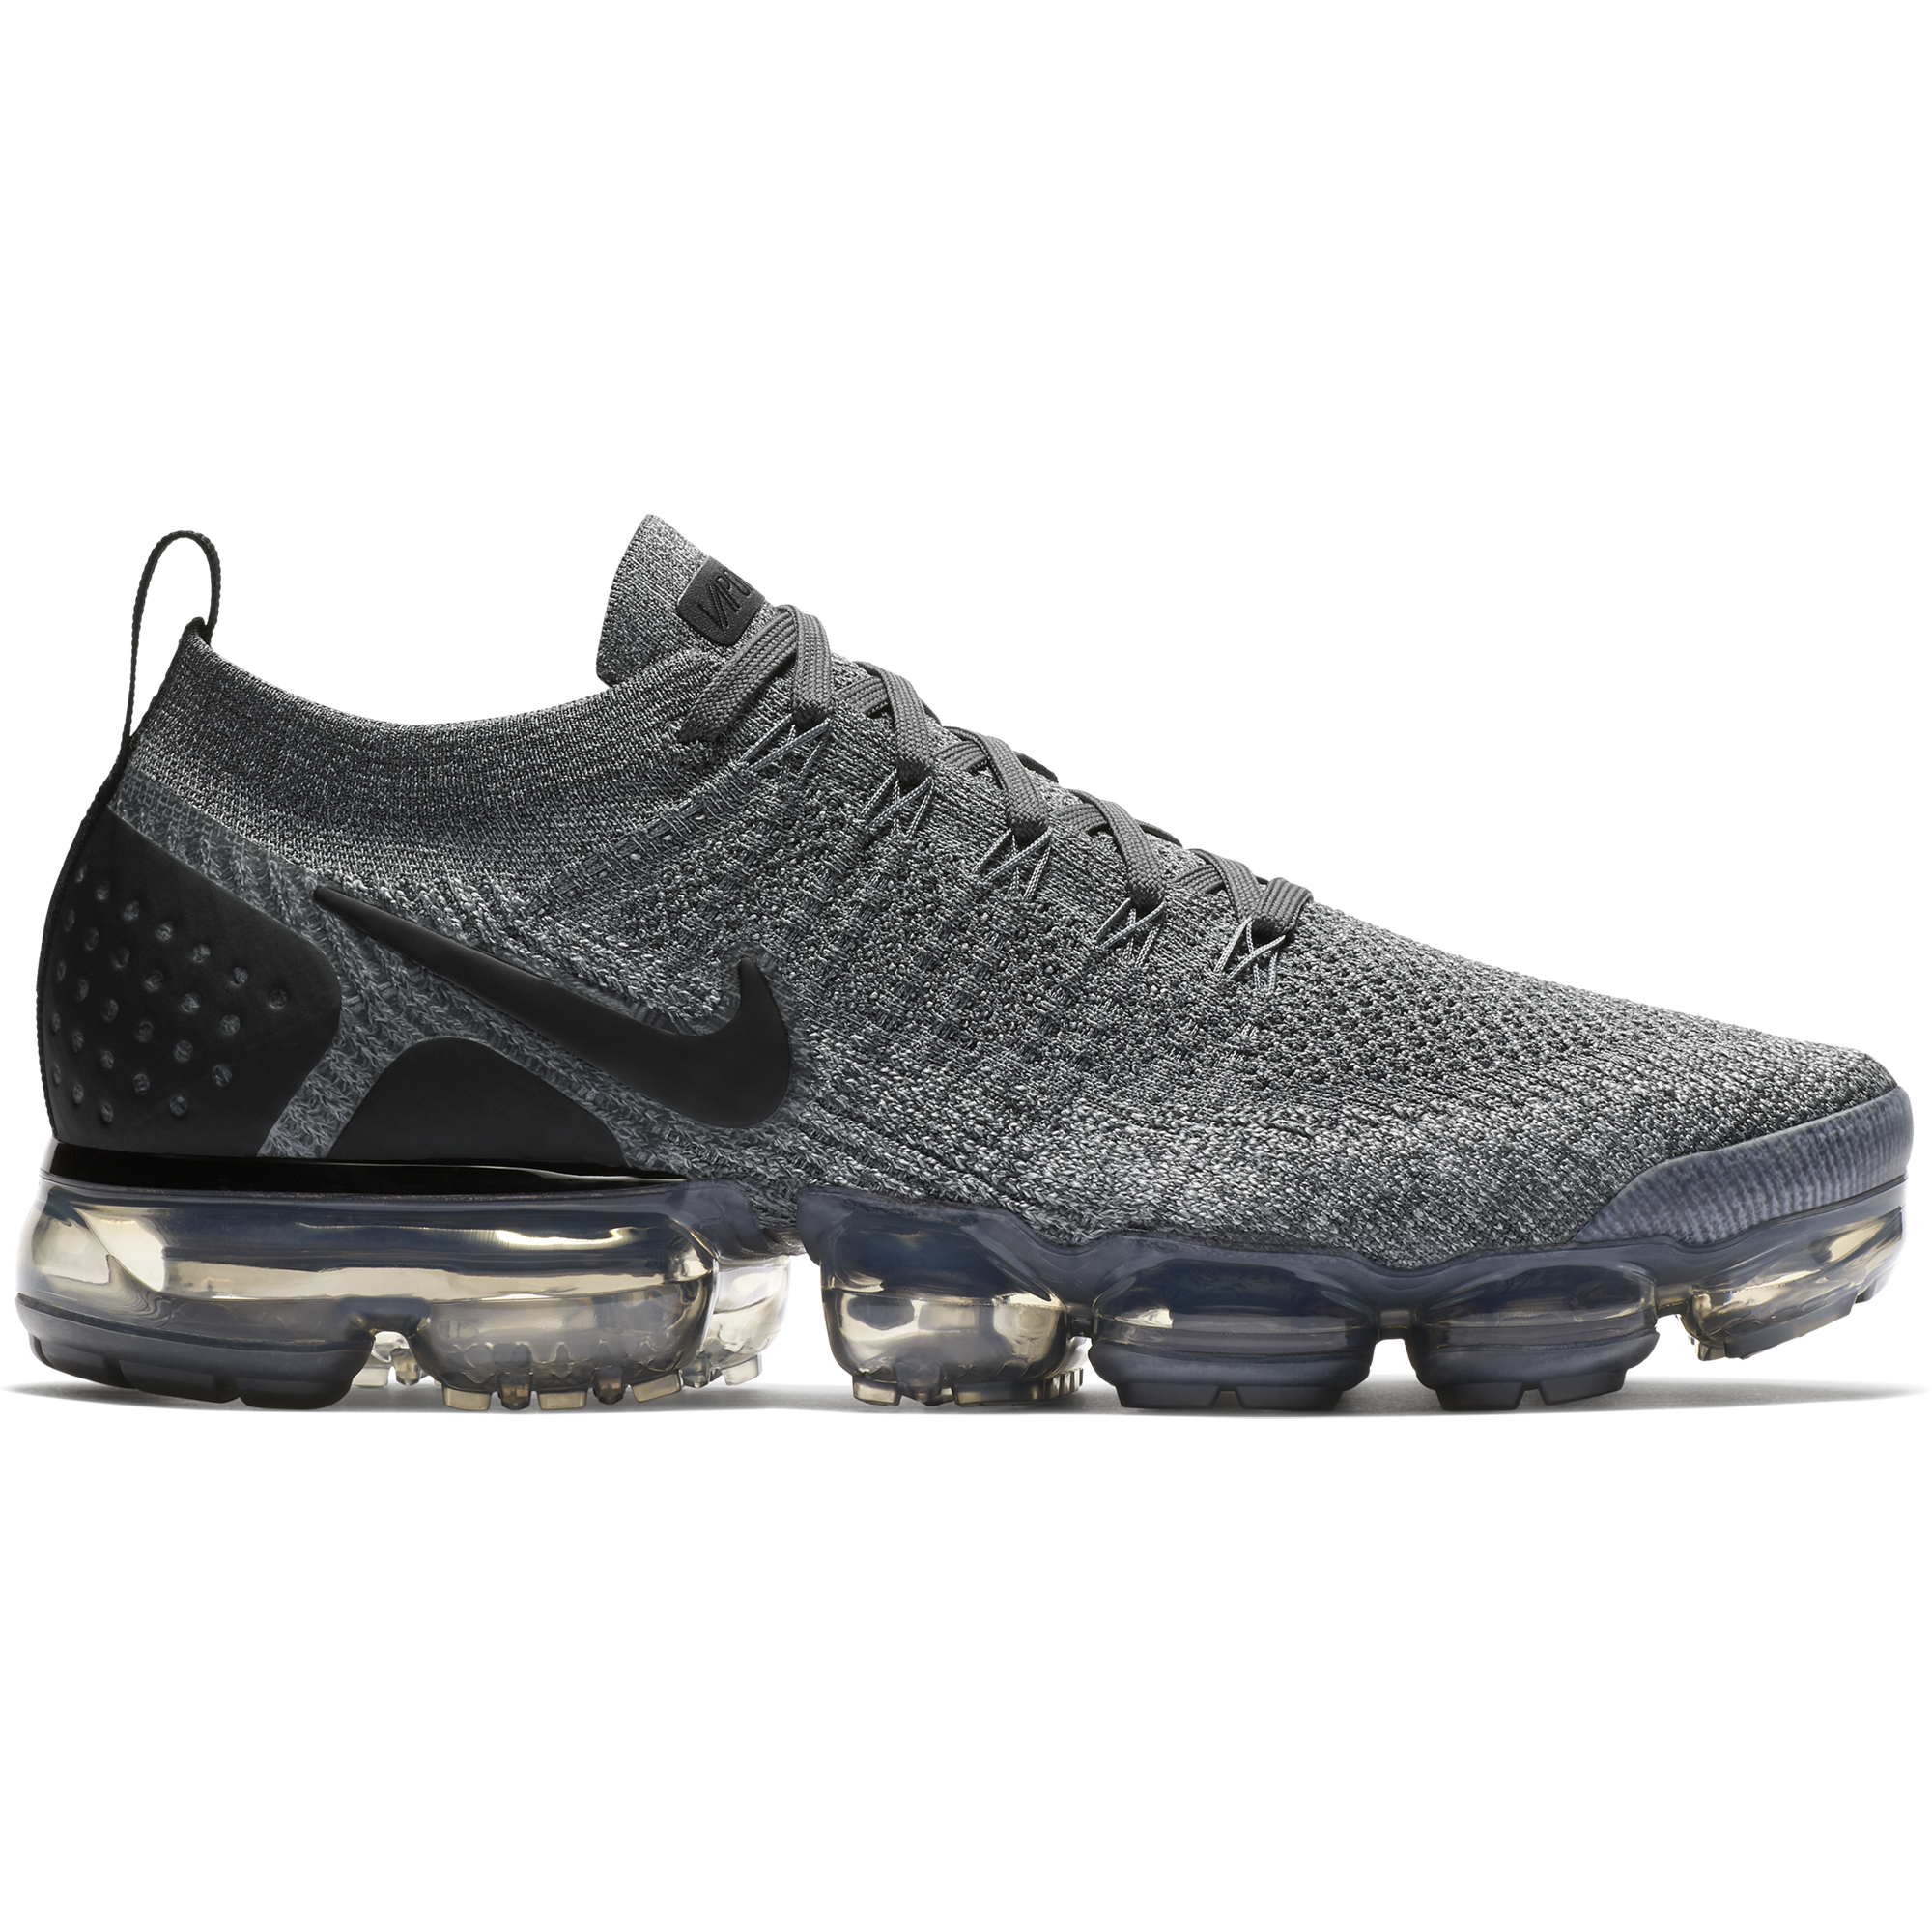 9272a4fa952 ... Men s Air VaporMax Flyknit 2 Running Shoe - Dark Grey Black Wolf Grey   ...